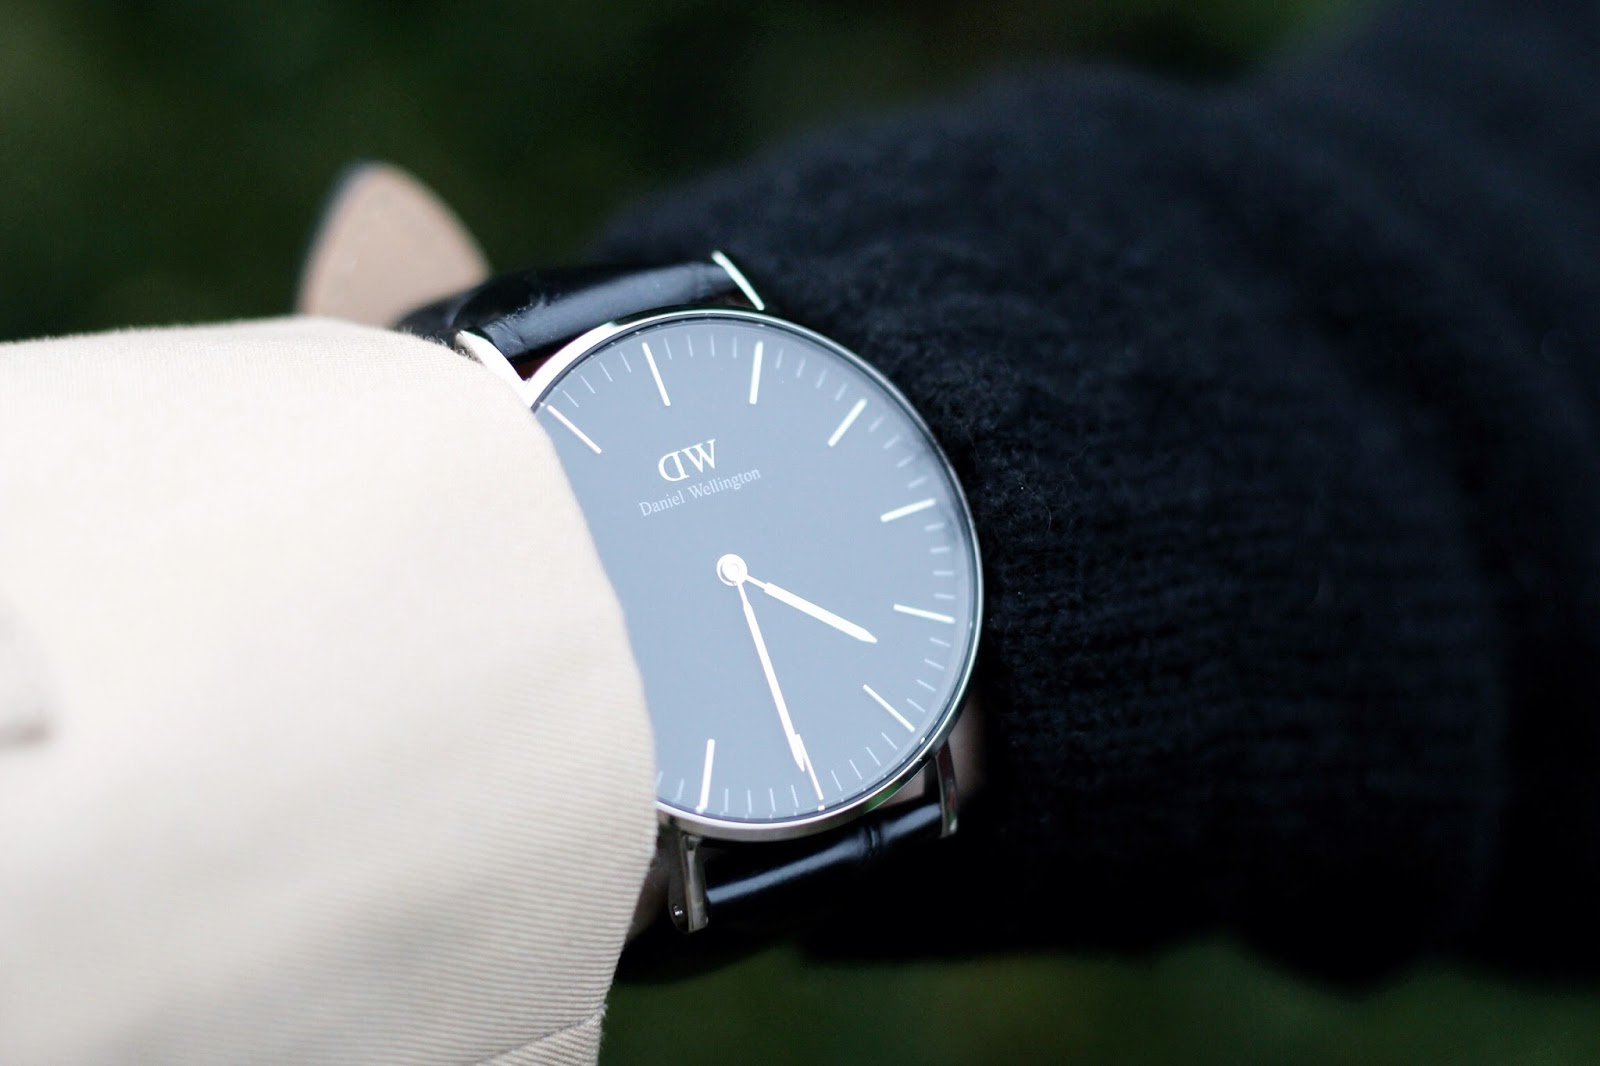 Black and silver Classic Reading Daniel Wellington watch